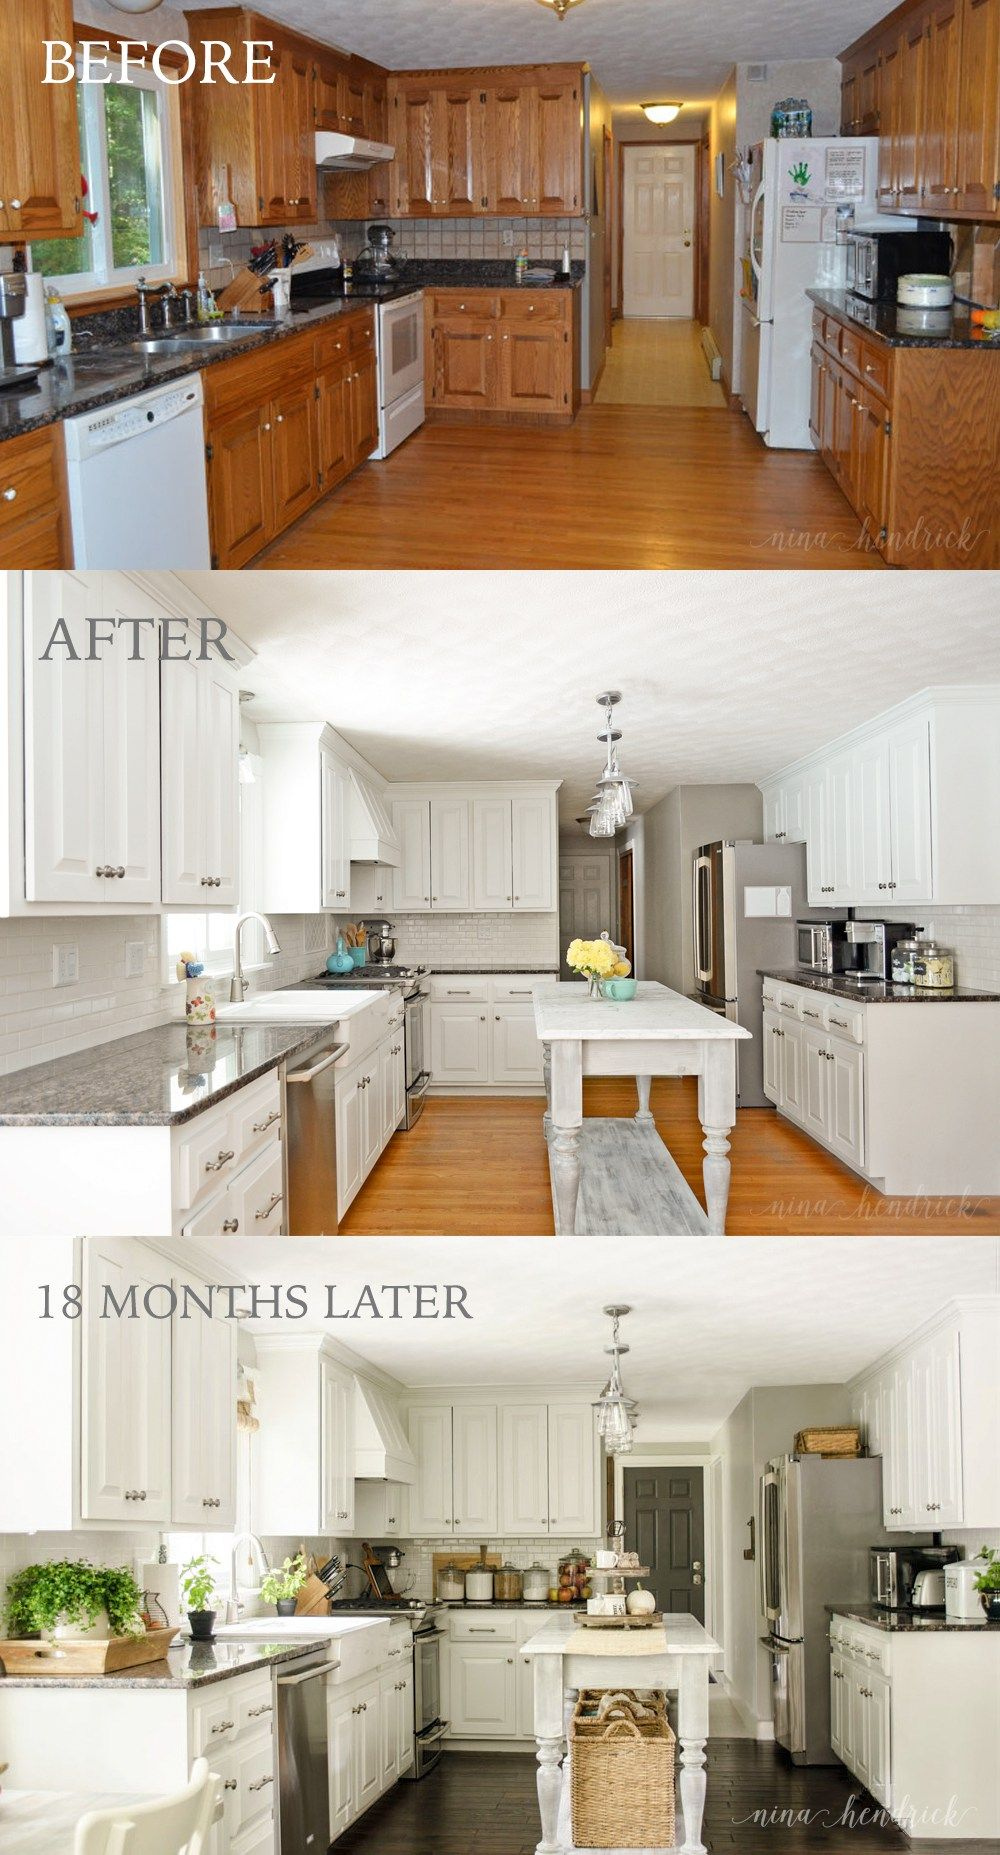 Awesome White Painted Kitchen Before, After, U0026 18 Months Later By @nina_hendrick